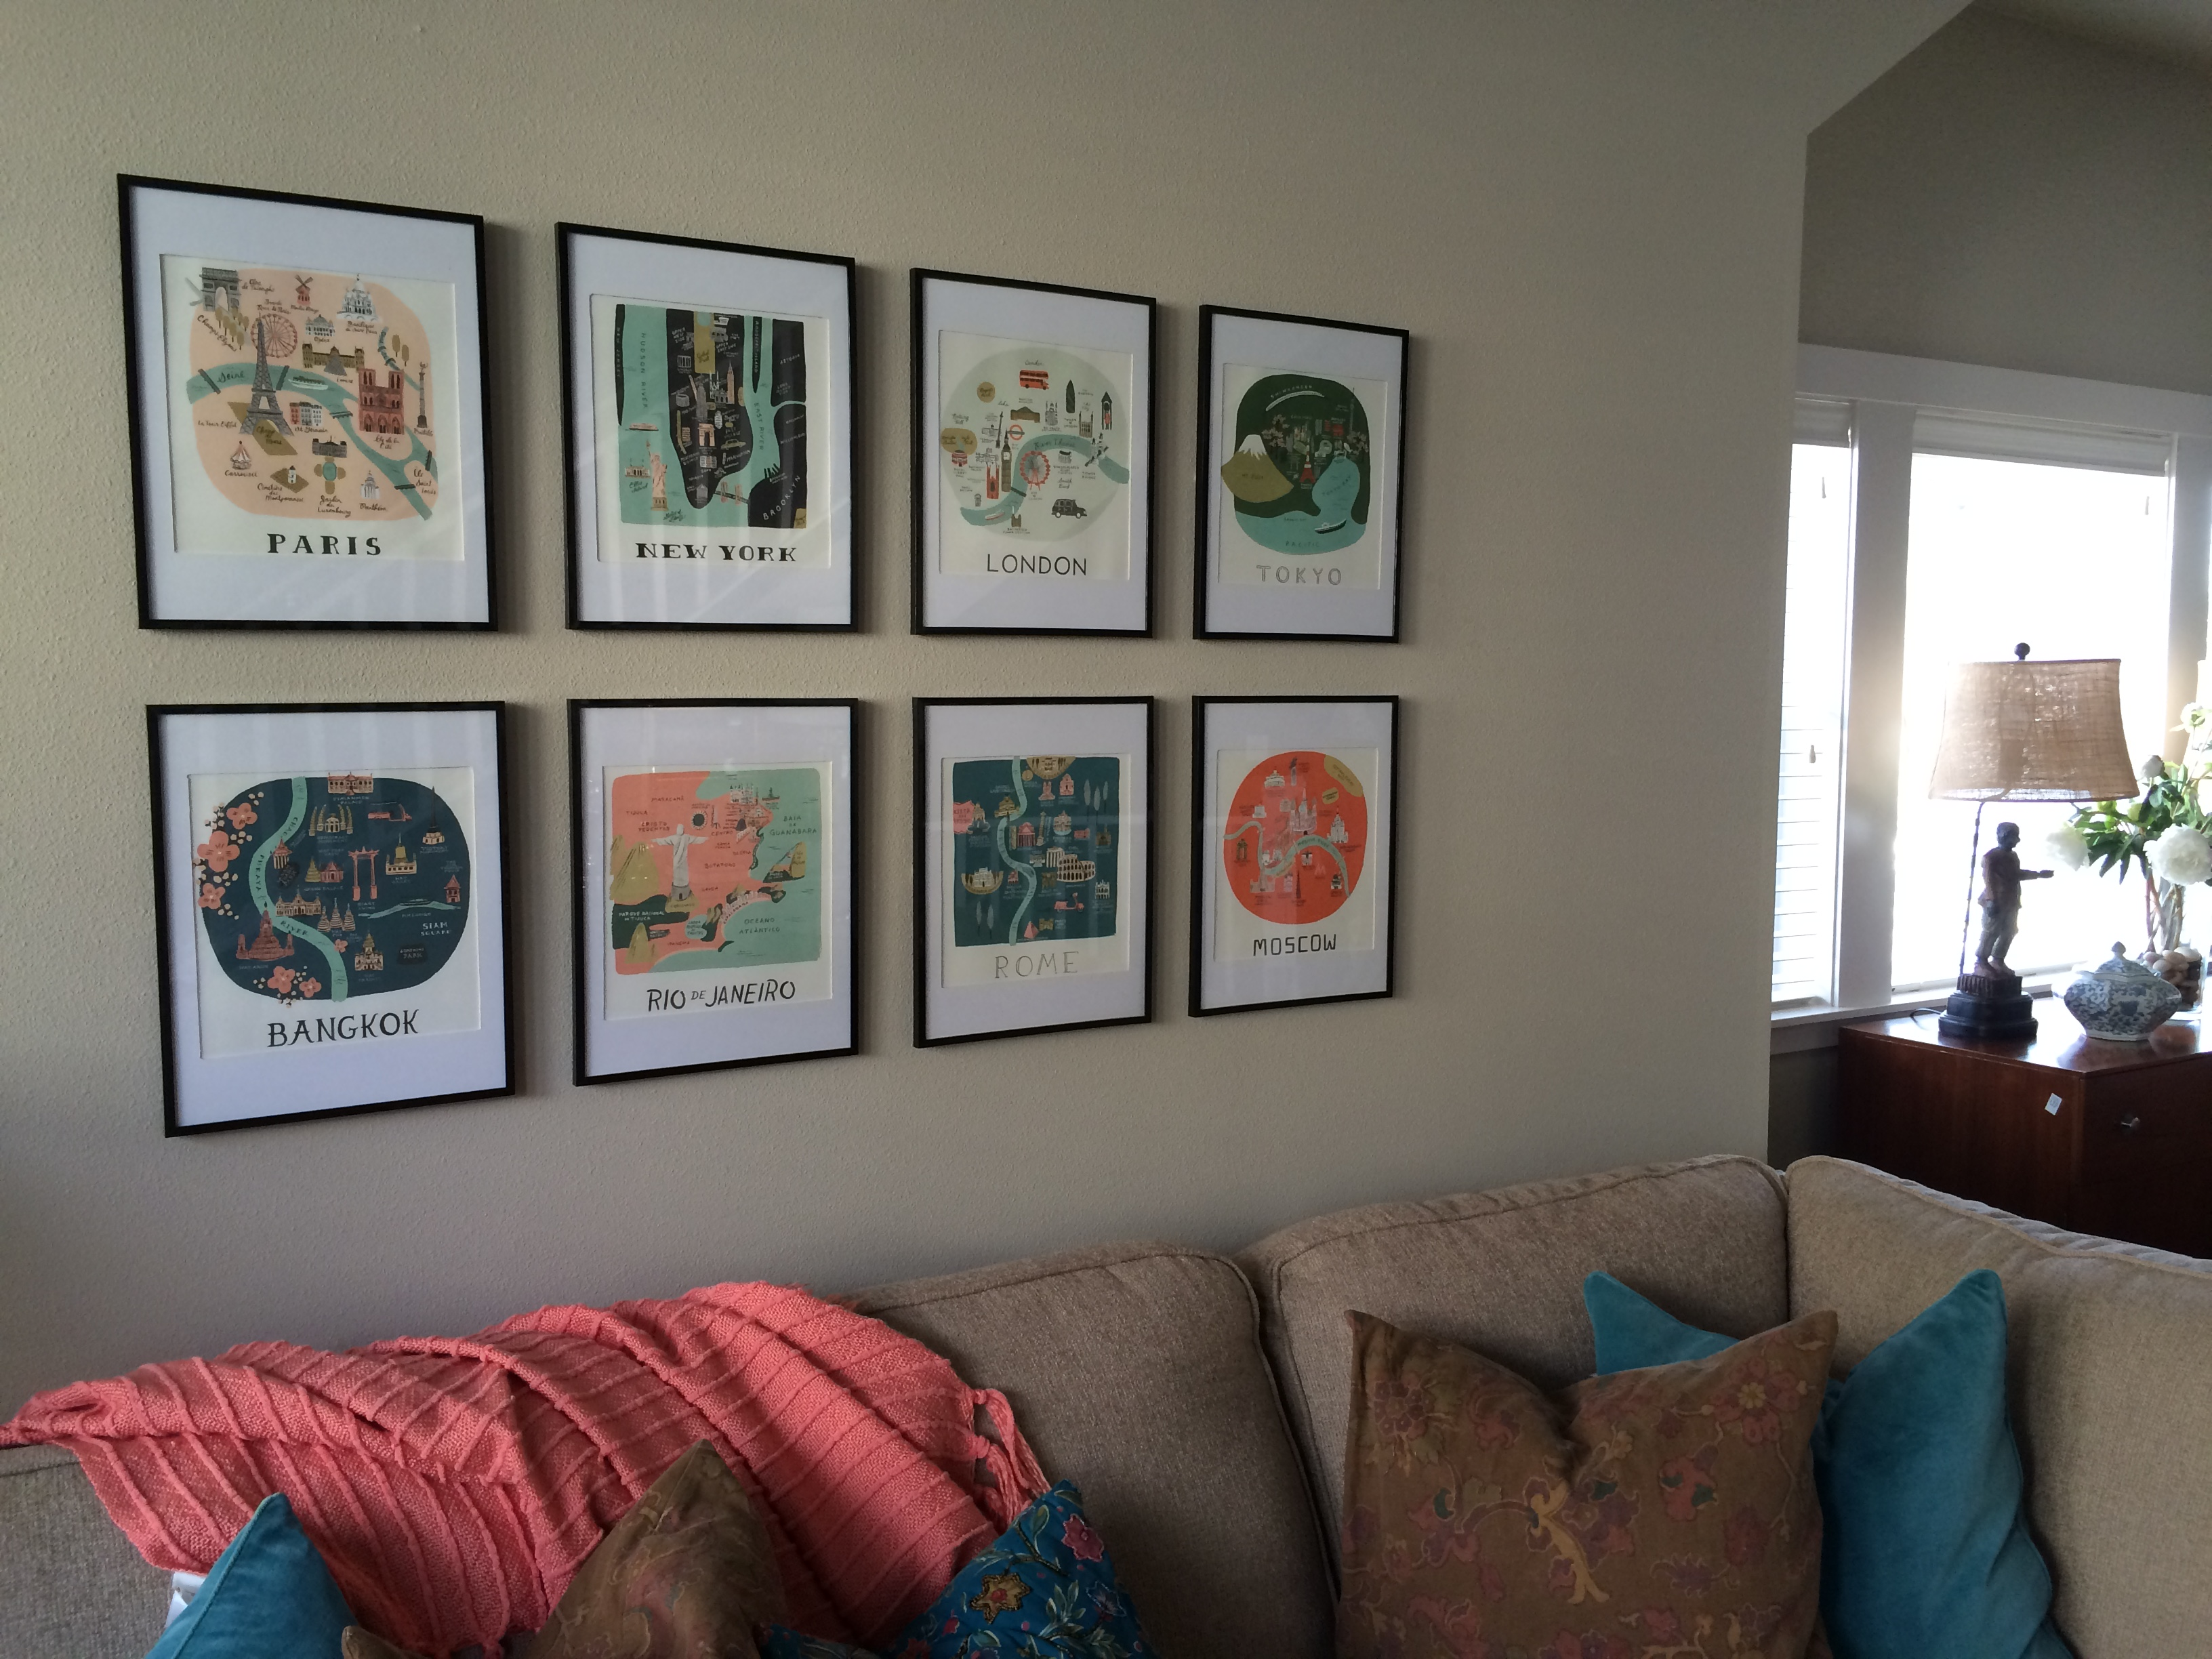 Hopefully This Has Inspired You To Try Making Your Own Gallery Wall!